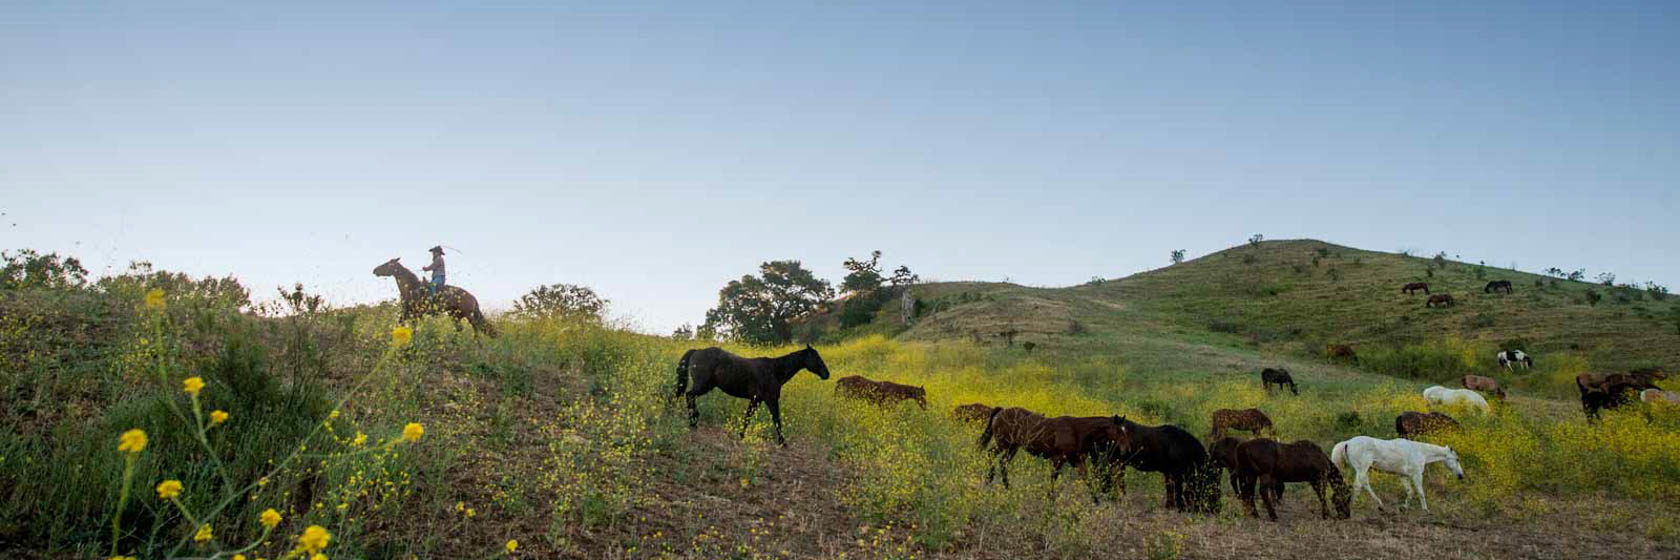 Horses grazing in a sunny field